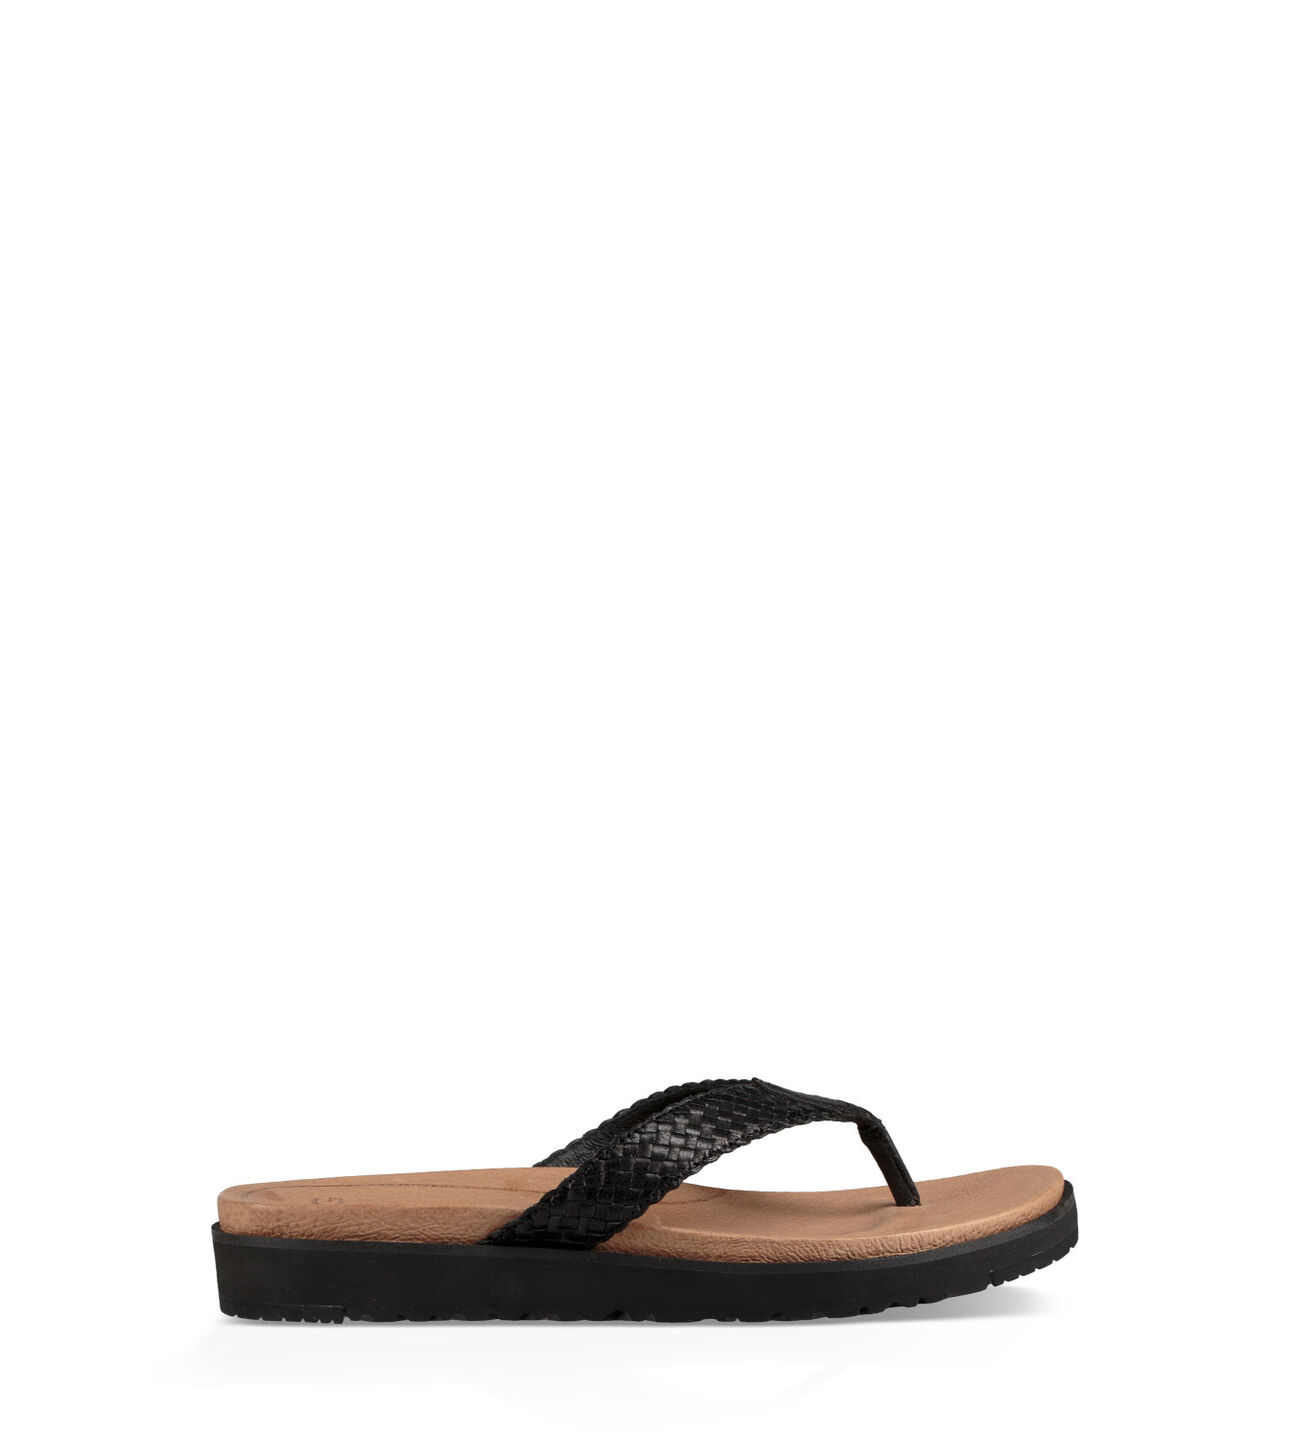 Womens sandals in canada